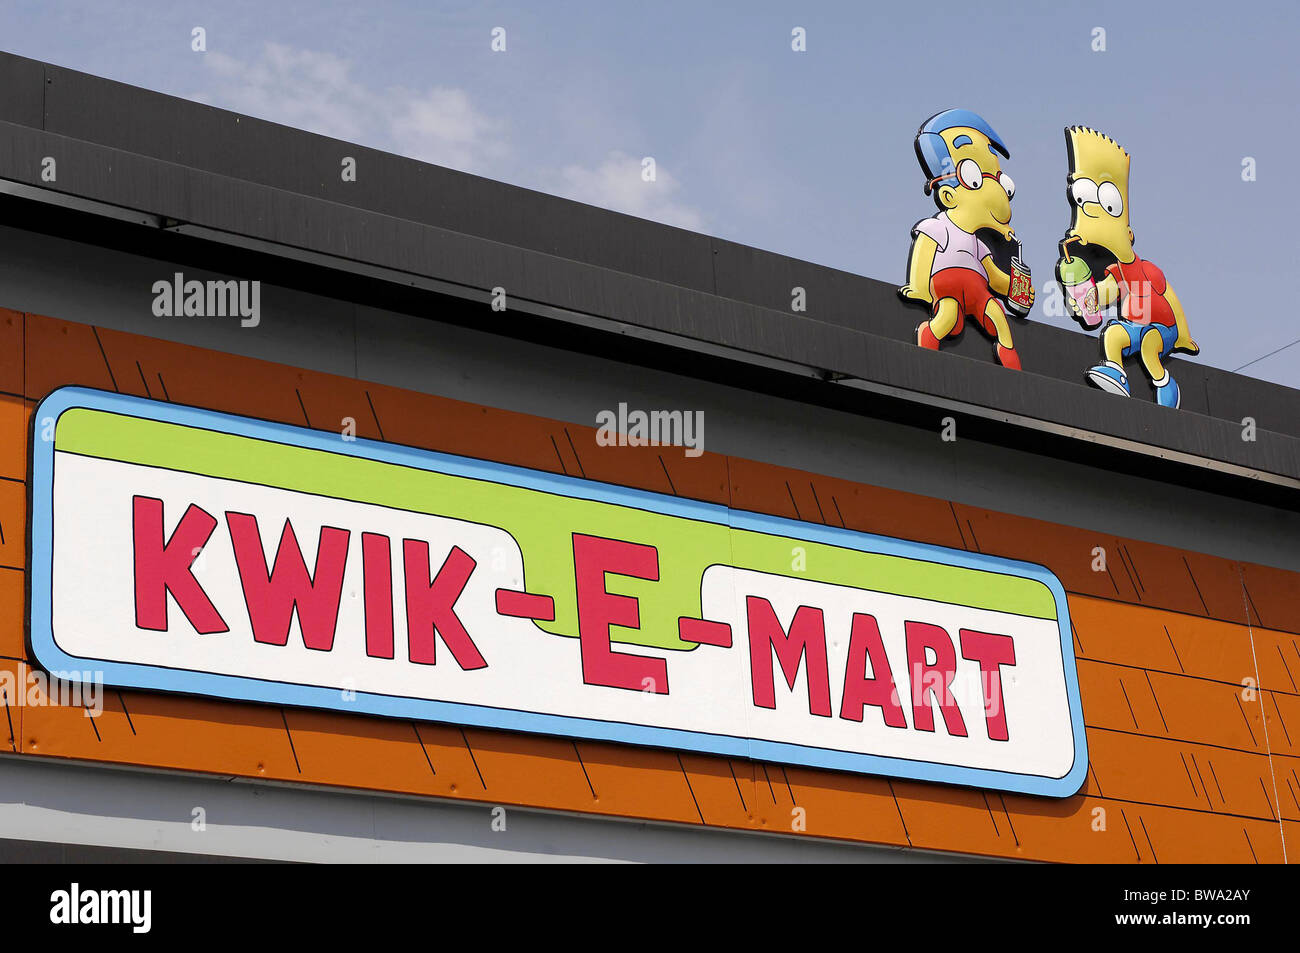 7 Eleven Transformed Into Kwik E Mart To Promote The Simpsons Movie Stock Photo Alamy